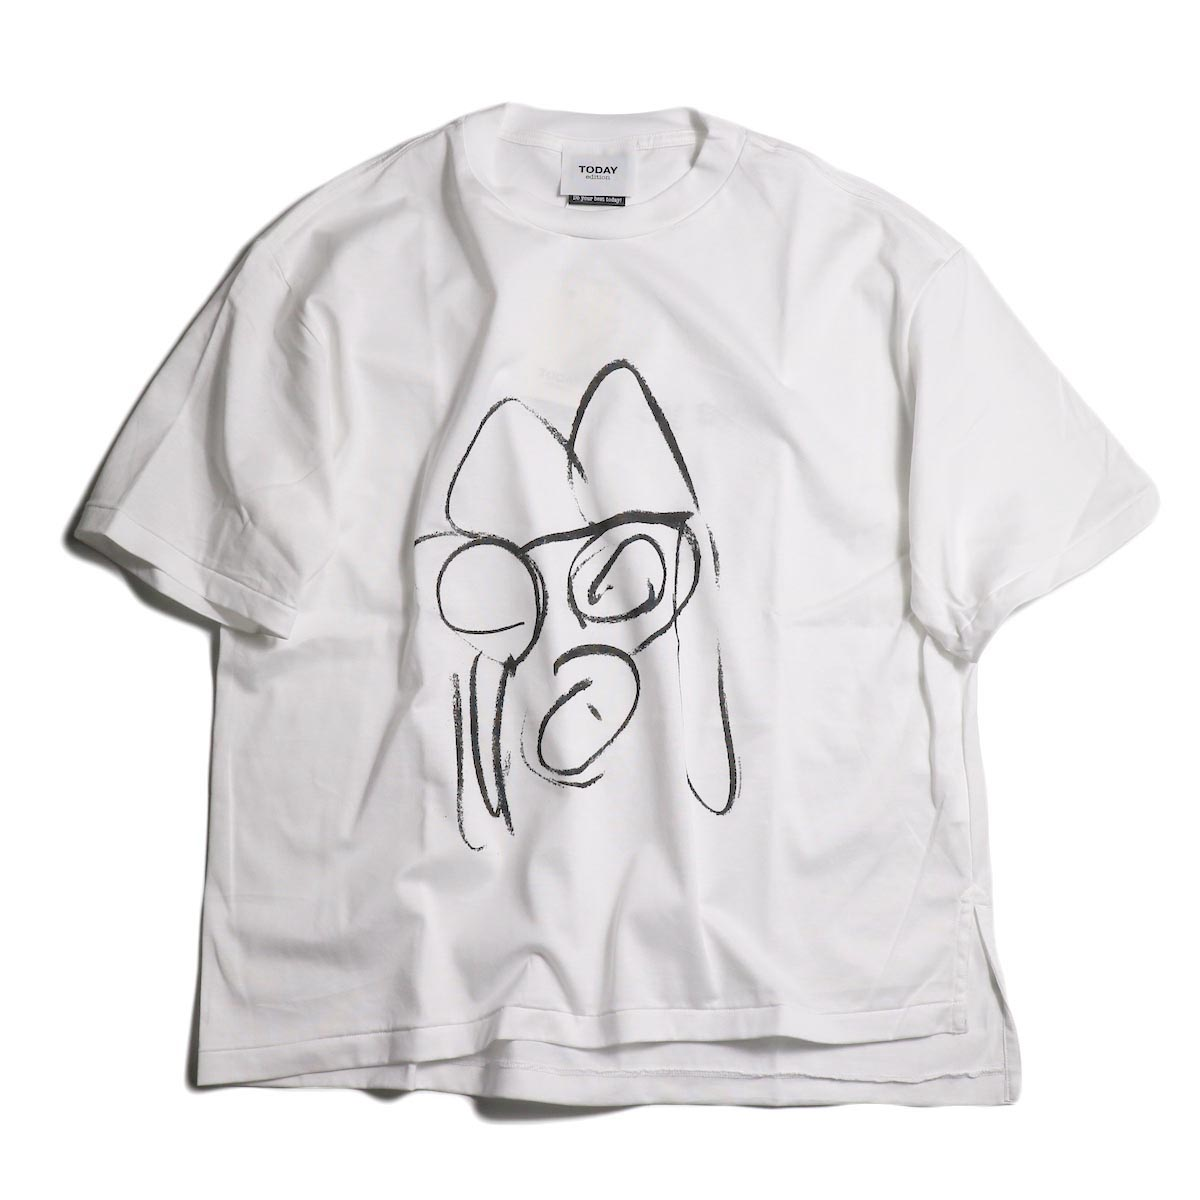 TODAY edition / drawing tee #1 -White